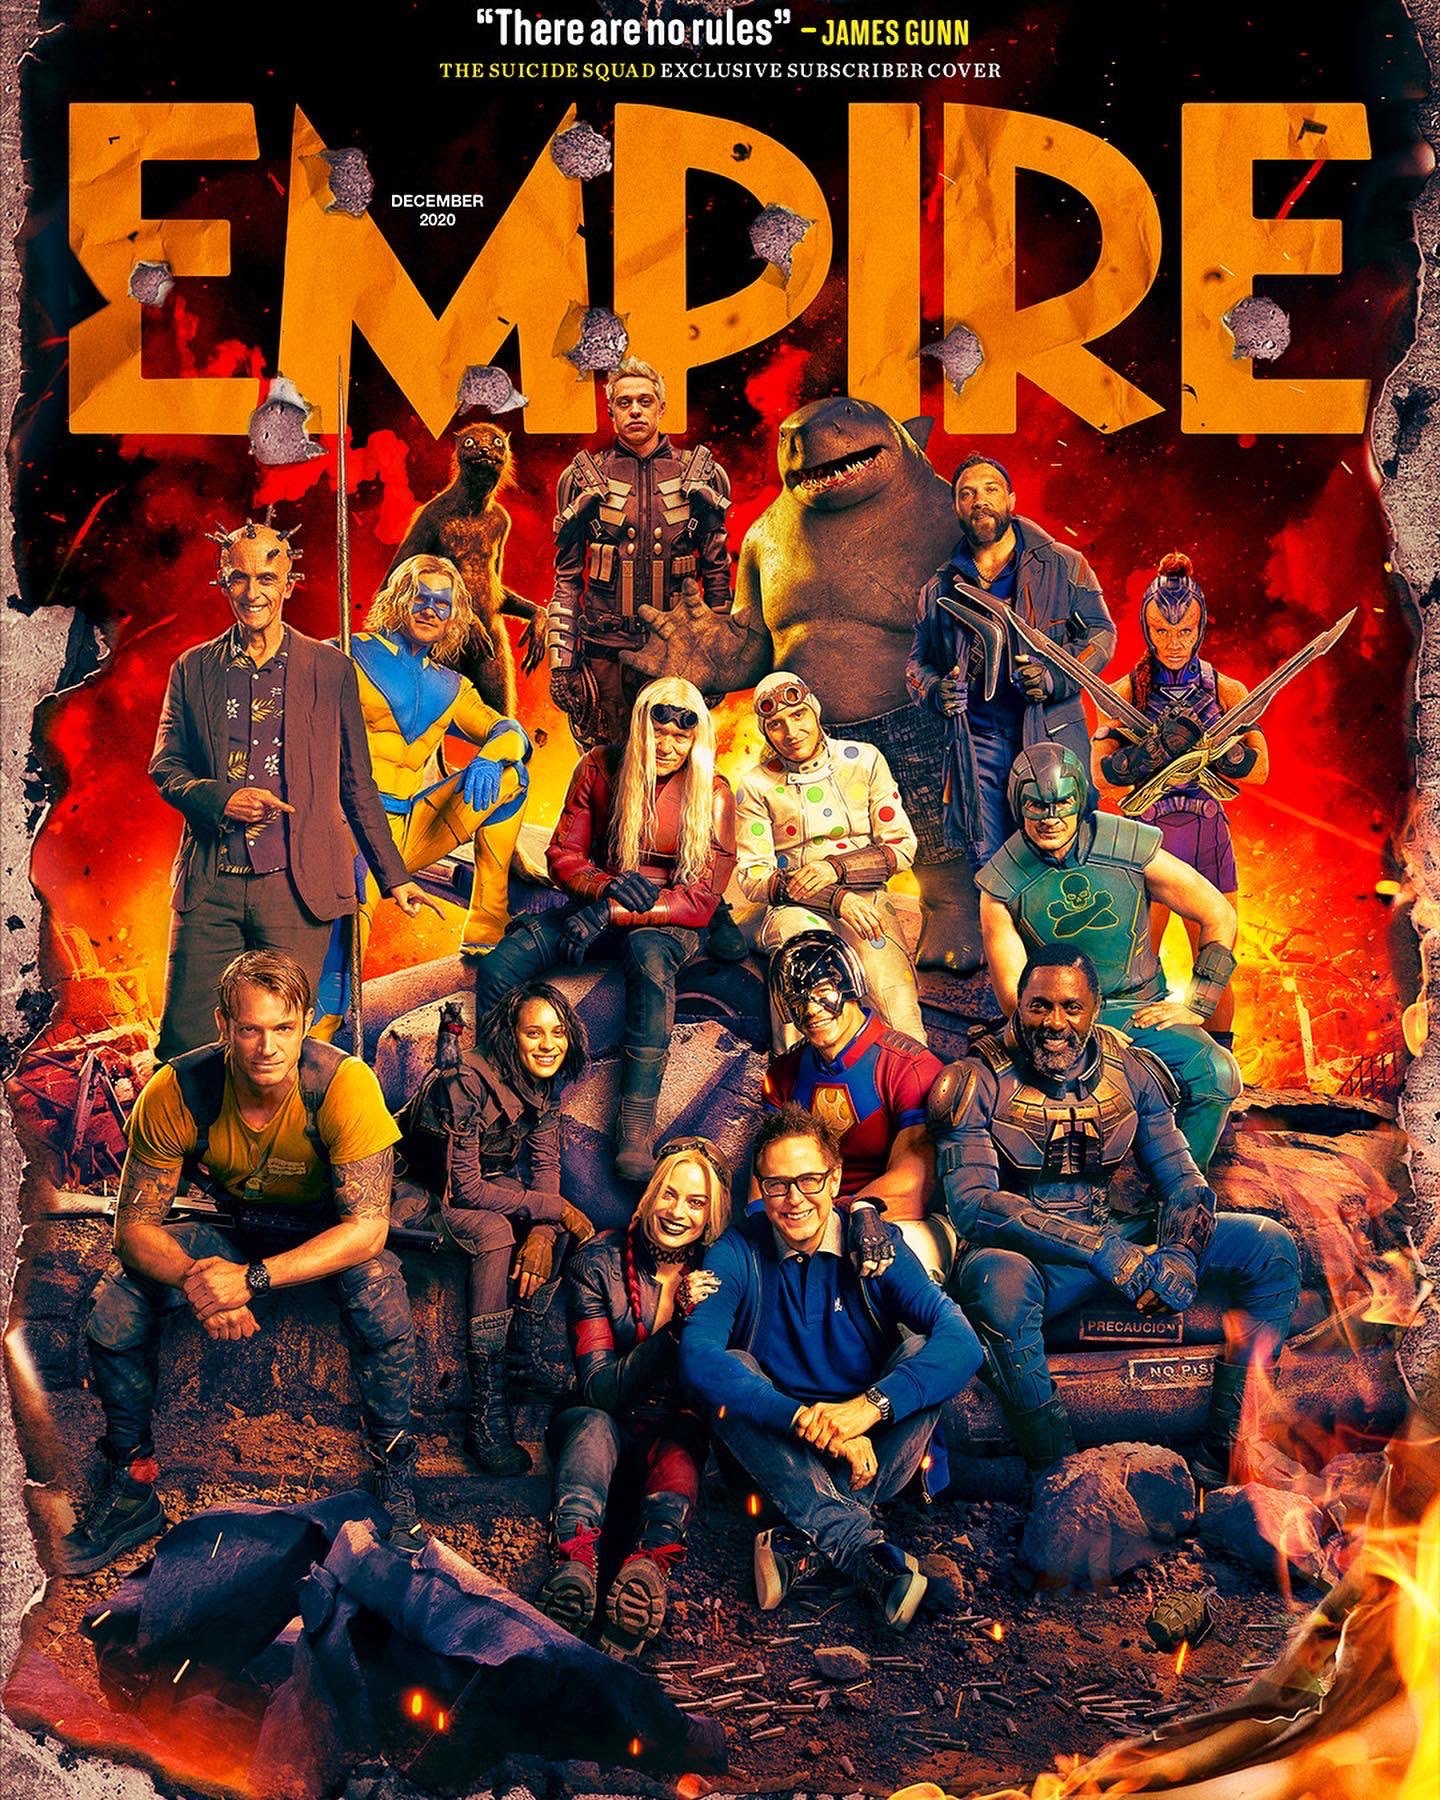 The Suicide Squad Revealed On Empire Magazine Covers | Cosmic Book News